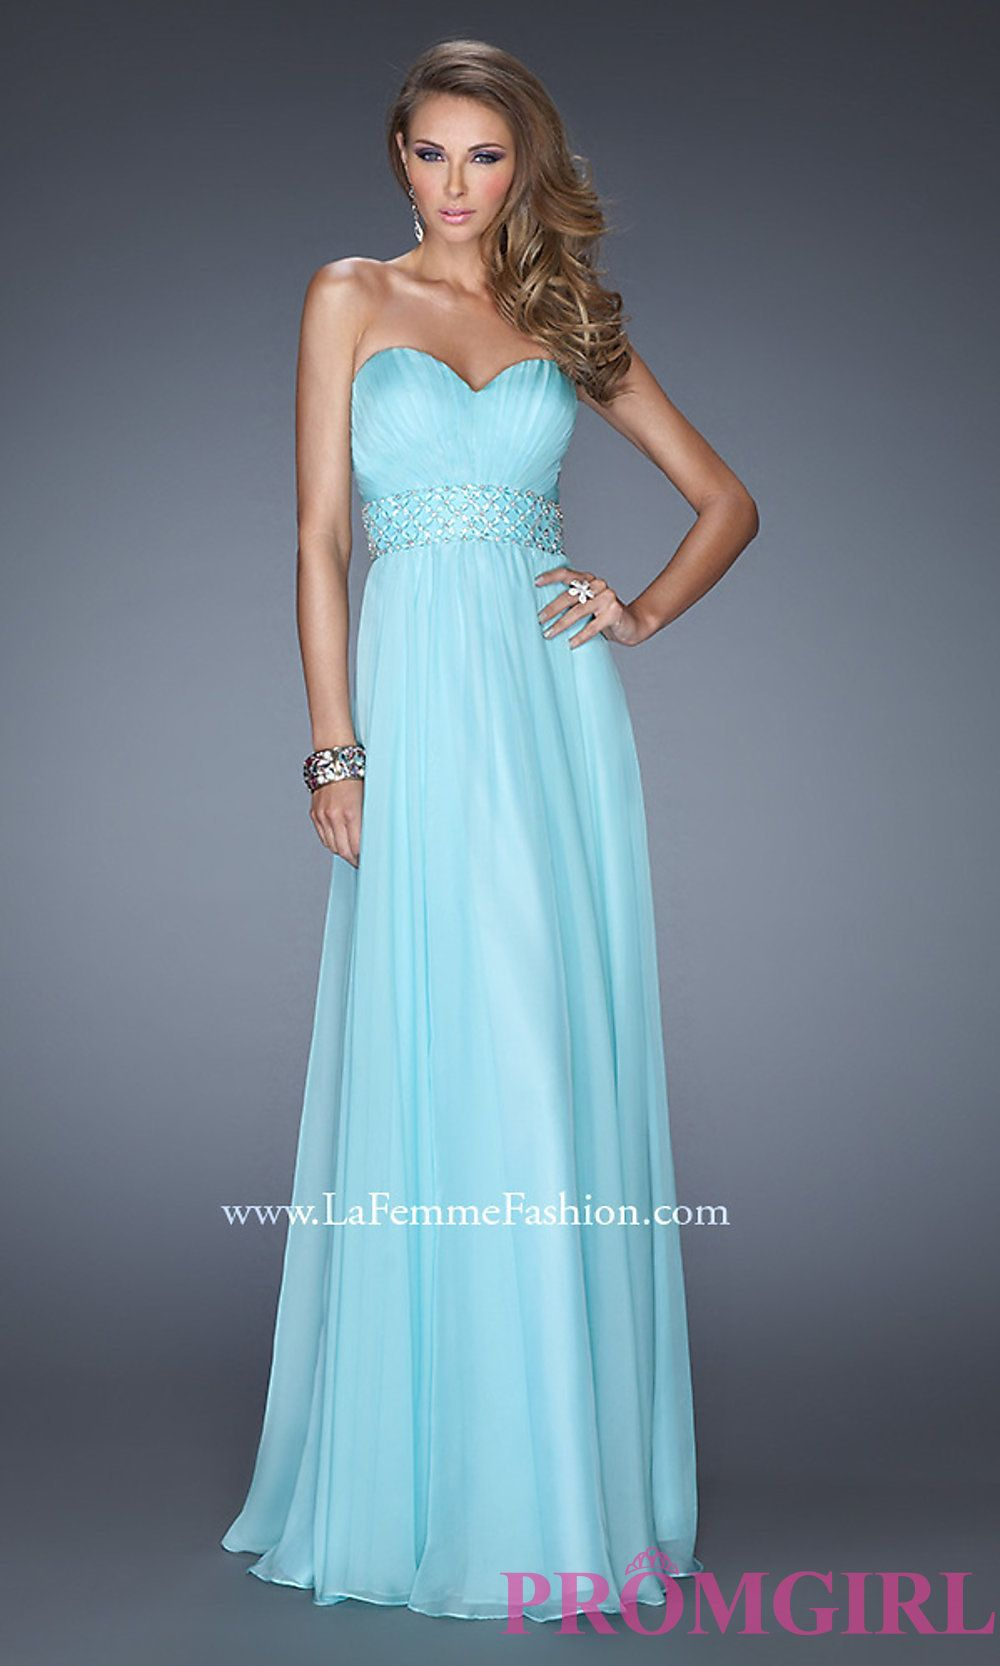 Long Prom Dress Style: LF-20140 Detail Image 2 | Prom girl ...